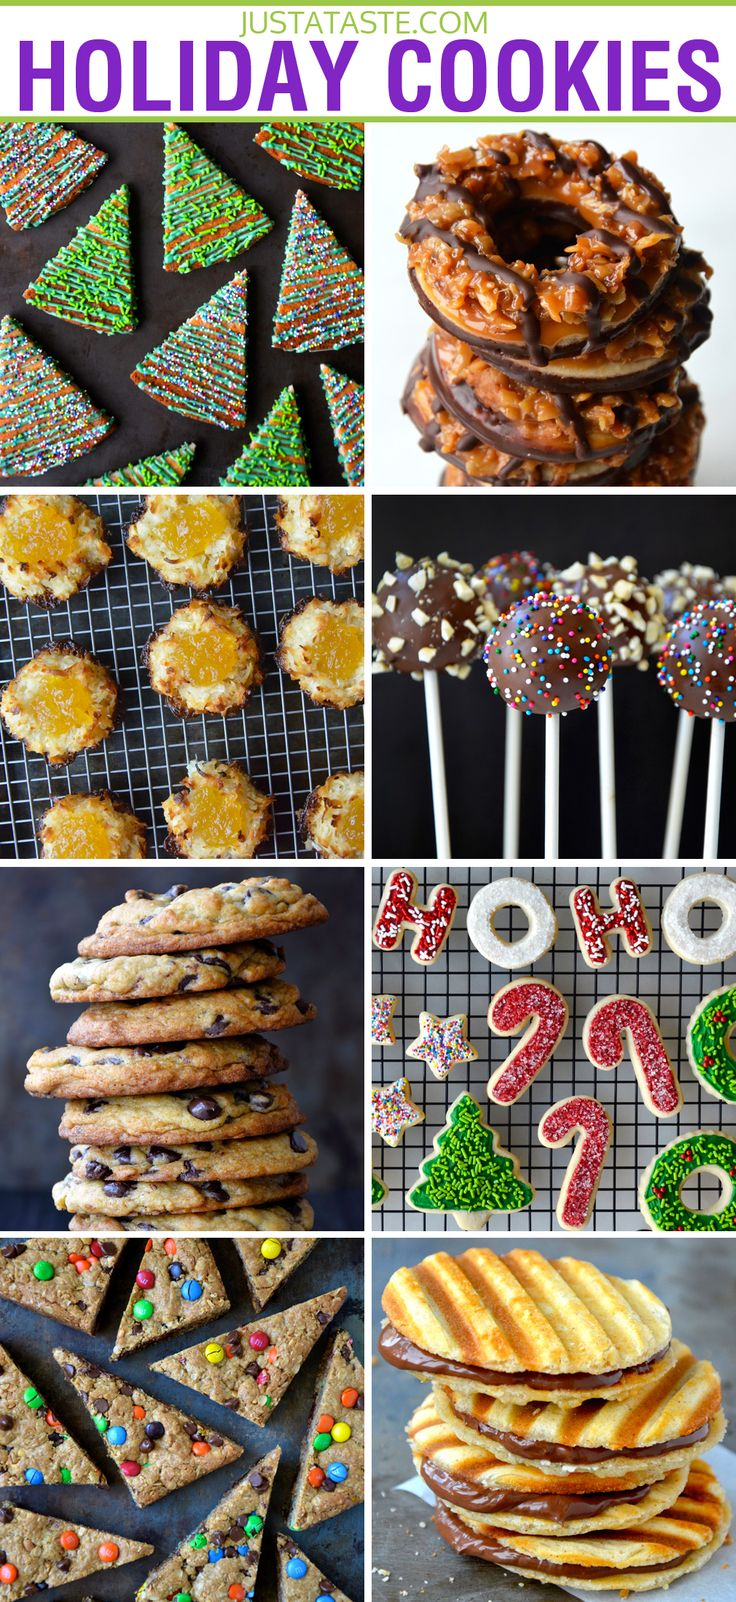 The Best Holiday Cookie Recipes from justataste.com #recipe #cookies